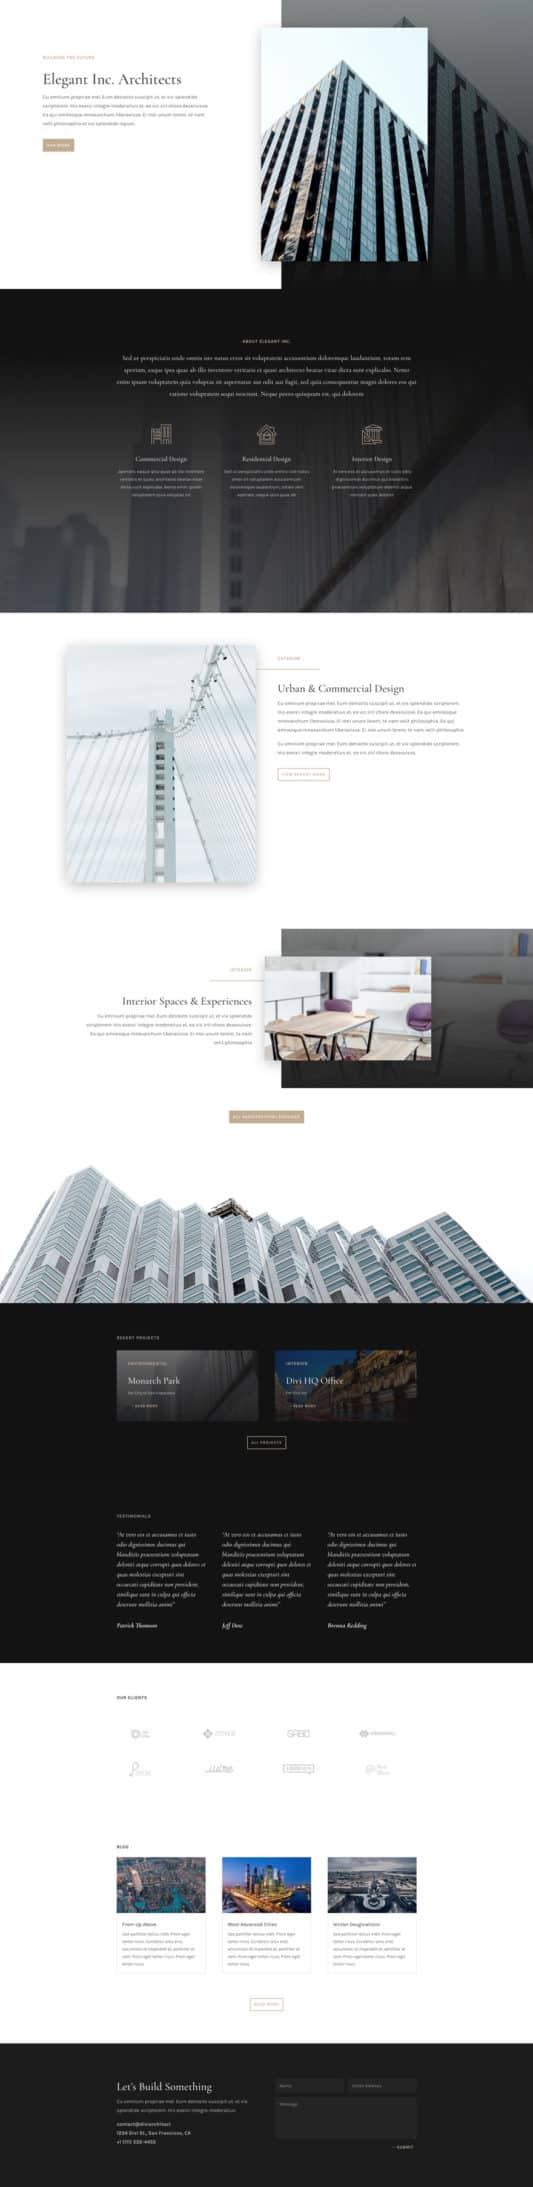 Architecture Firm Web Design 4